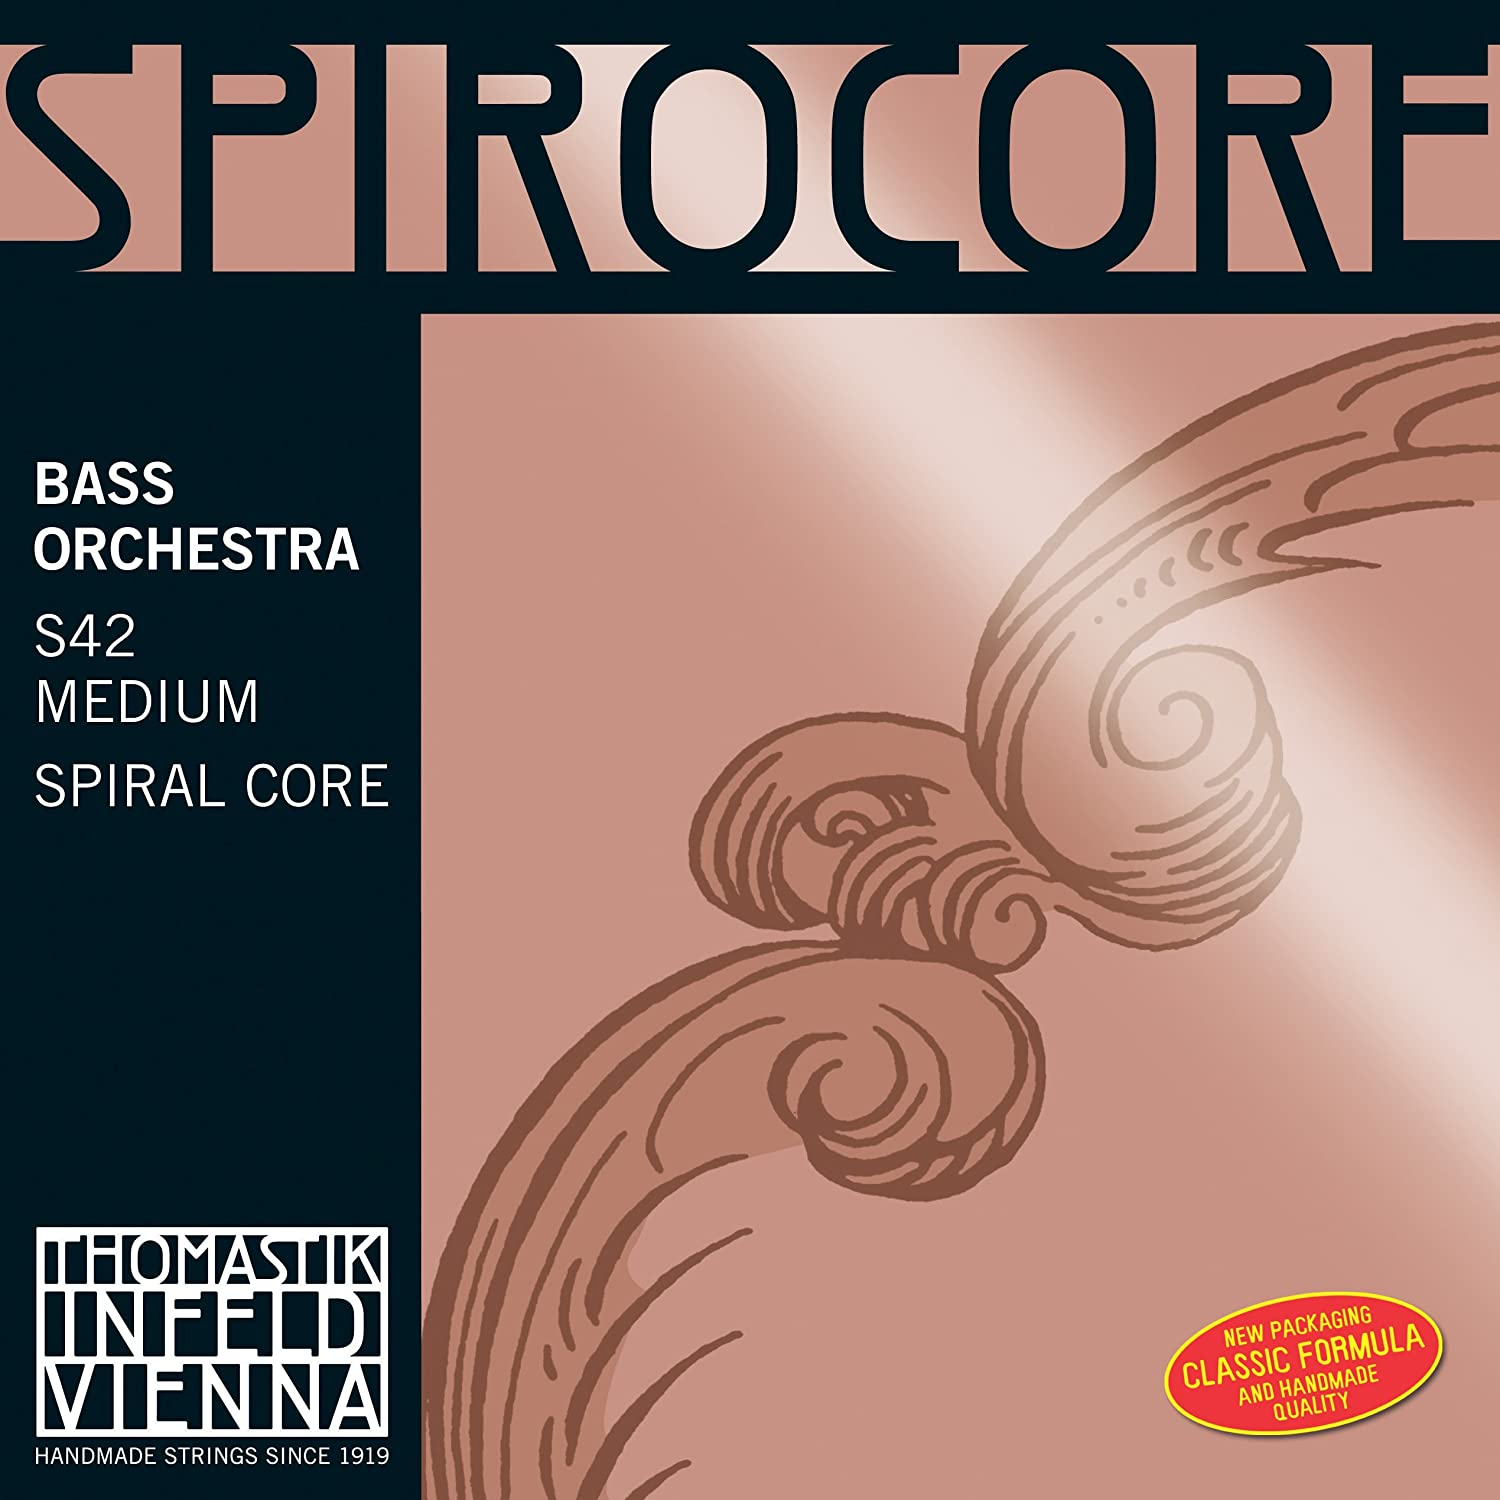 Thomastik-Infeld S43 Spirocore Bass Strings, Complete Set, 4/4 Size, Solo Tuning Connolly Music Company